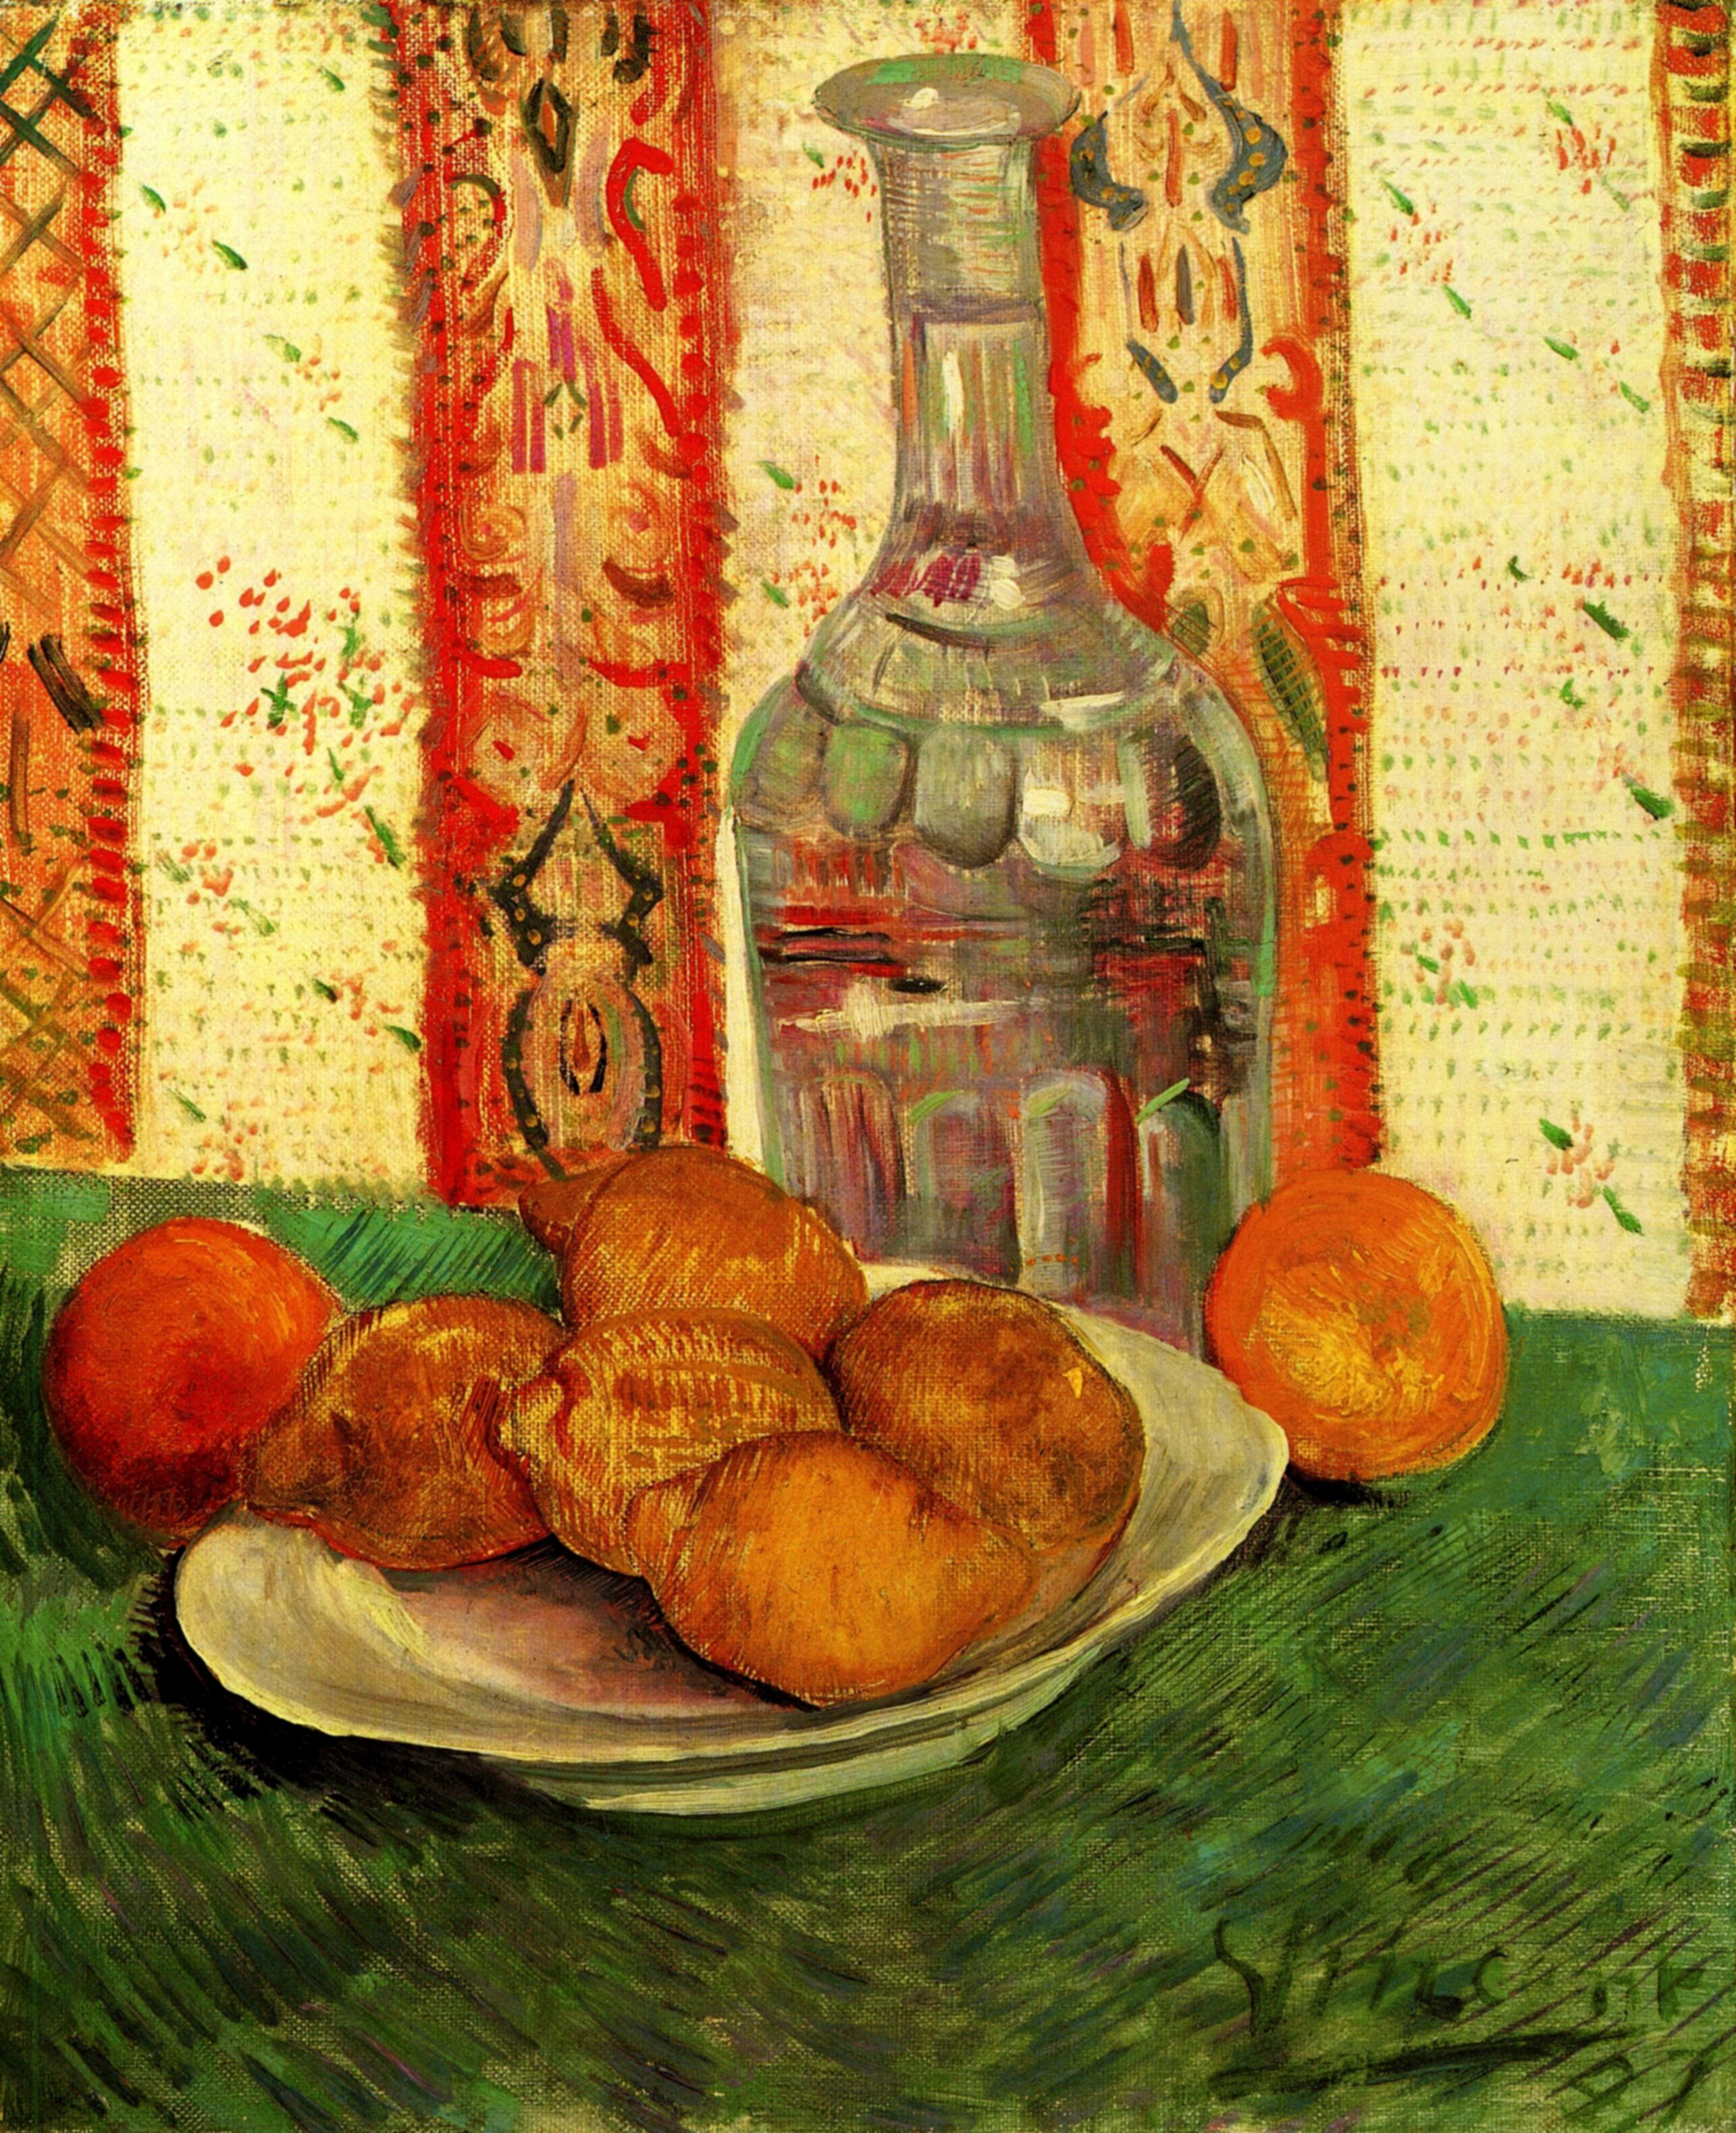 Still Life with Decanter and Lemons on a Plate 1887